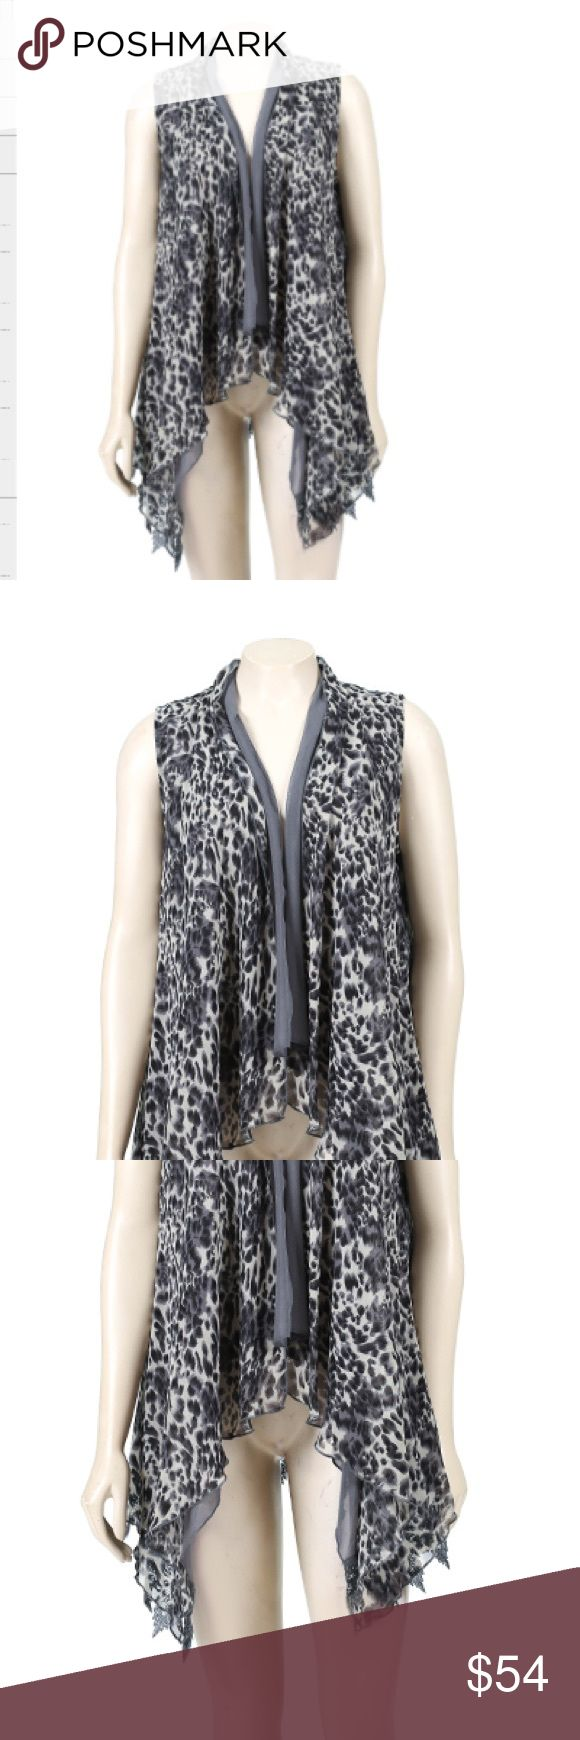 Layered Leopard Print Vest in Grey VERY Versatile Leopard Print Grey Vest              100% Polyester                                                     Layered Vest                                                      Longer in the front                                            (Sorry for the crotch shot!)                                    Every purchase comes with free gift!!  Let me tag you so you can choose the color Jackets & Coats Vests